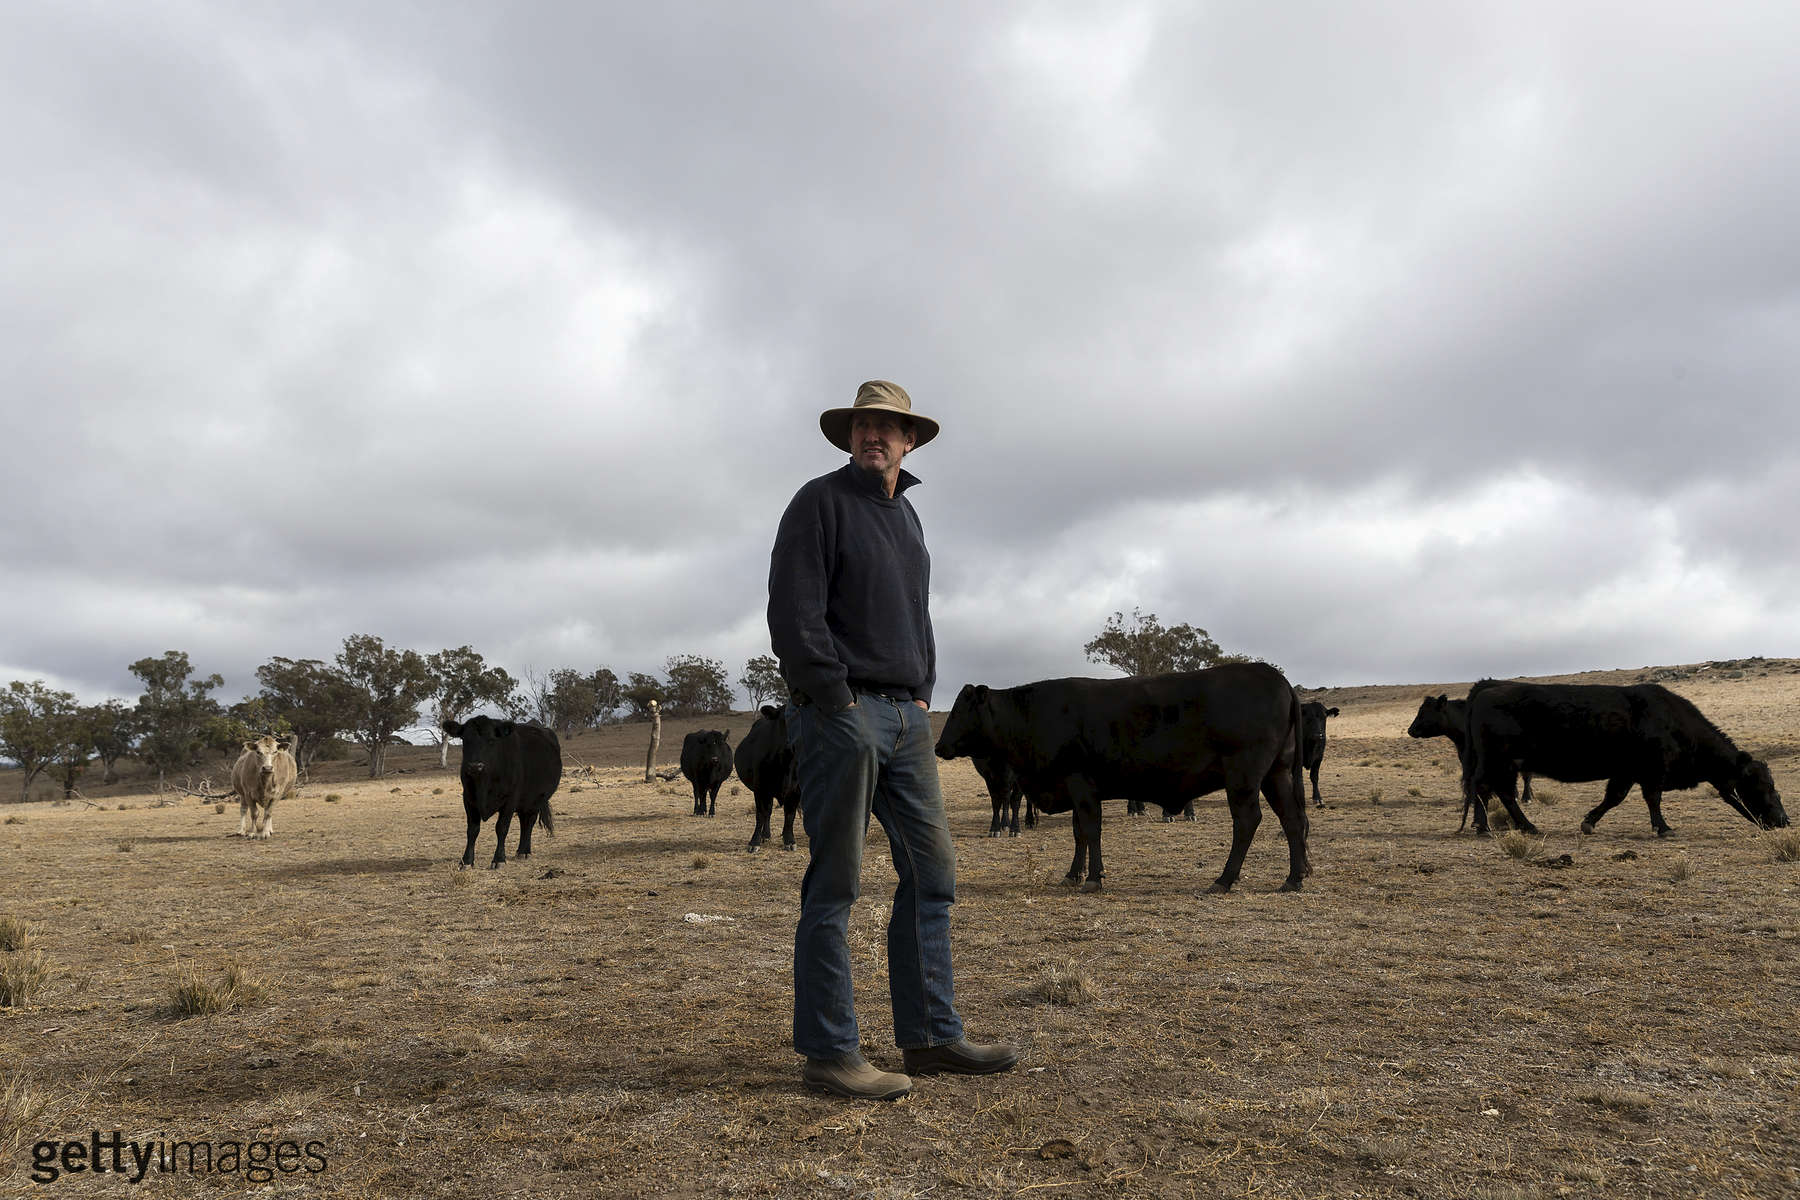 COONABARABRAN , NEW SOUTH WALES - JUNE 18:  Angus Attkinson is pictured on his farm outside Coonabarabran. In the Central Western region of New South Wales, Australia, farmers continue to battle a crippling drought which many locals are calling the worst since 1902. In Warrumbungle Shire, where sharp peaks fall away to once fertile farmland the small town of Coonabarabran is running out of water. The town dam is down to just 23% capacity, forcing residents to live with level six water restrictions. The New South Wales State government recently approved an emergency drought relief package of A$600m, of which at least A$250m is allocated for low interest loans to assist eligible farm businesses to recover. The package has been welcomed, though in the words of a local farmer {quote}it barely touches the sides{quote}. Now with the real prospect of a dry El-Nino weather pattern hitting the state in Spring, the longer term outlook for rain here is dire. June 18, 2018 in Coonabarabran, Australia.  (Photo by Brook Mitchell/Getty Images)